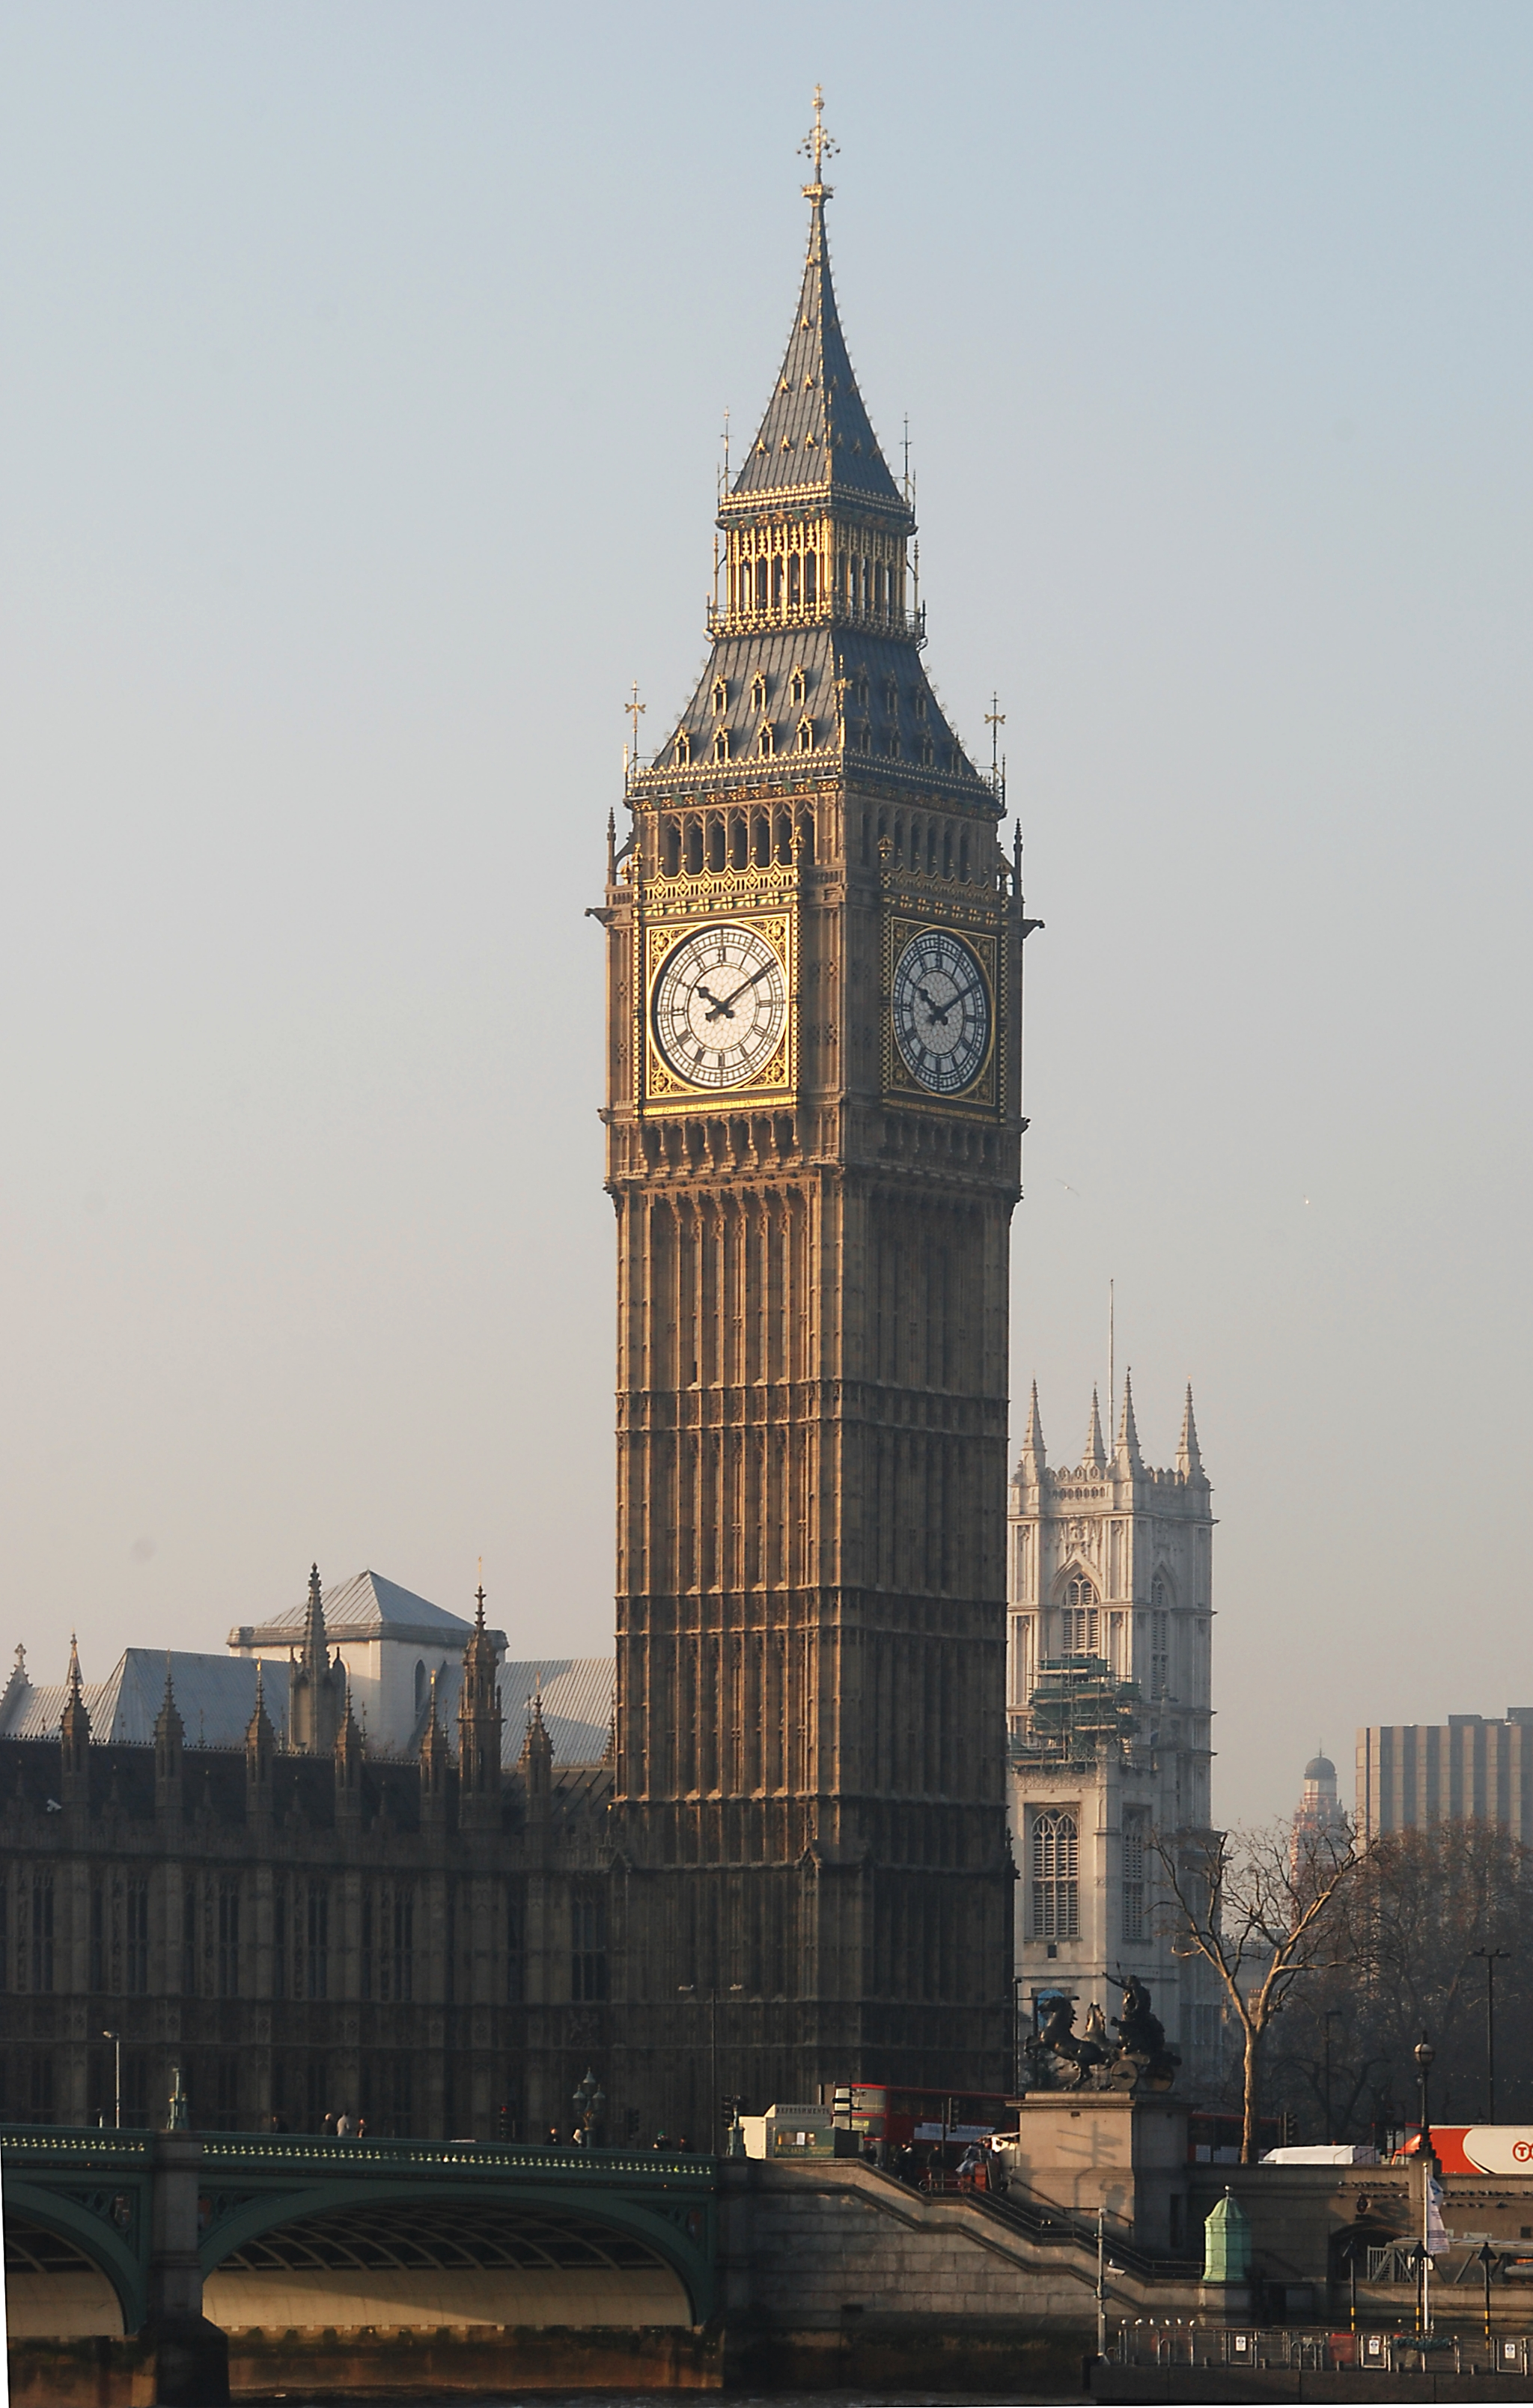 File:Big Ben 2007-1.jpg - Wikipedia